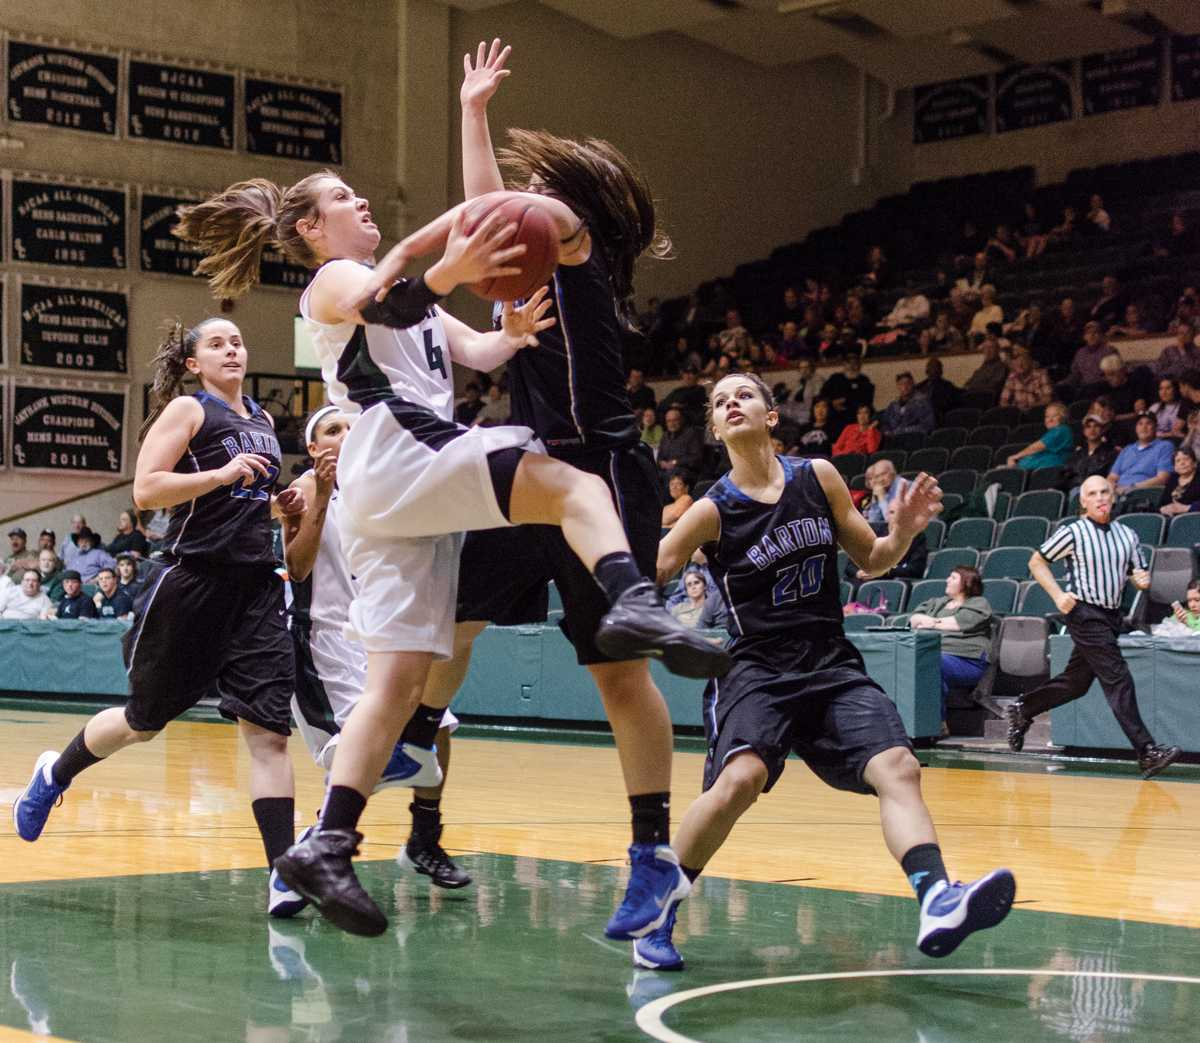 Crusader photo/ Jakub Stepanovic Kyndal Davis aiming for the basket in the game against the Lady Cougars from Barton at the Green House, Feb. 19.